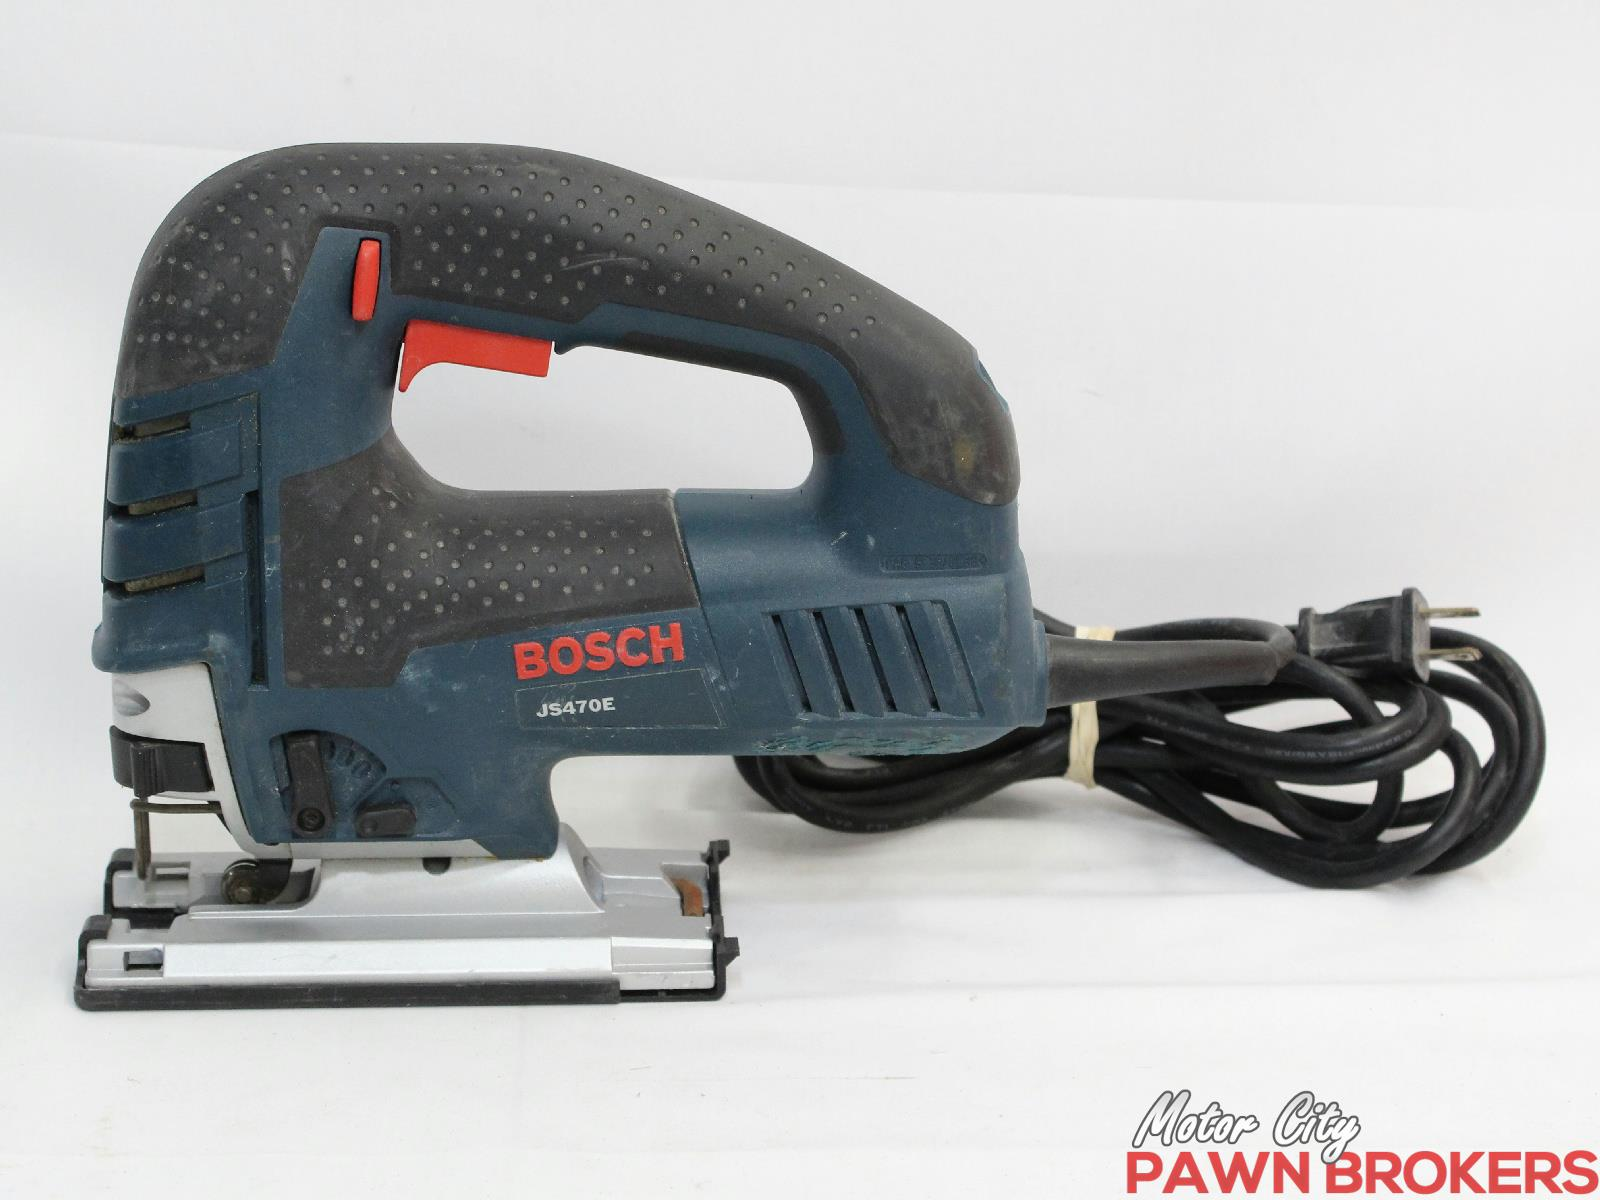 Bosch js470e top handle orbital corded jig saw for Motor city pawn shop